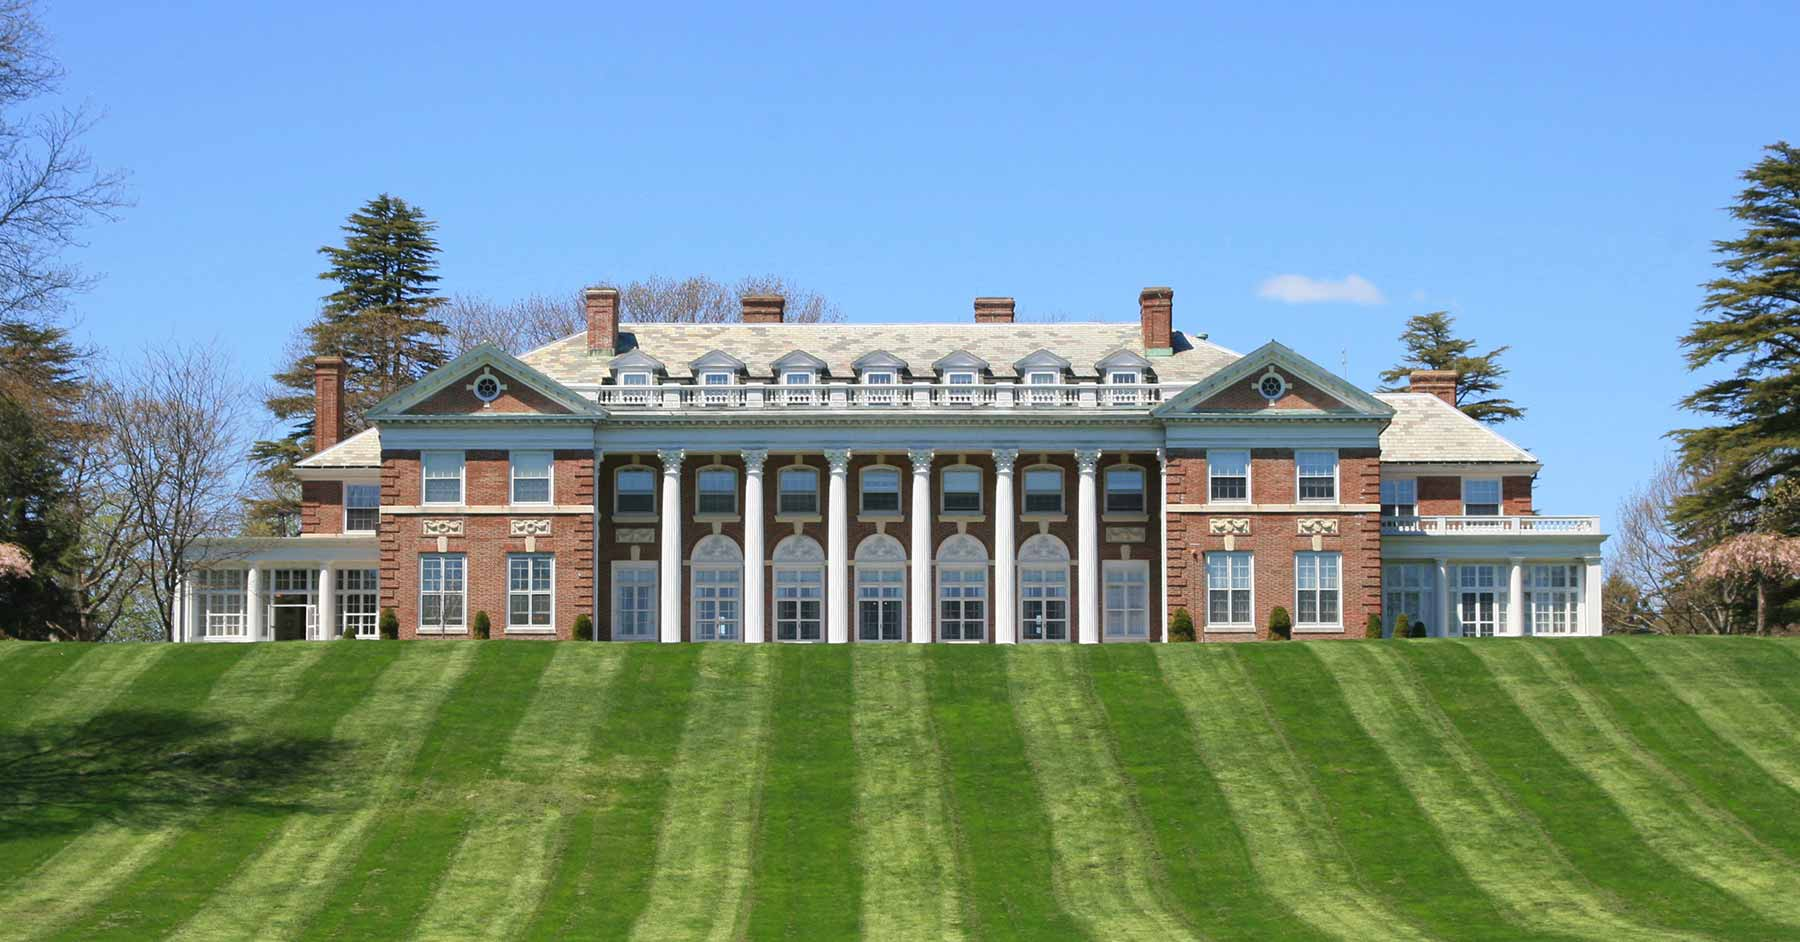 What Does it Cost to Attend Stonehill College?